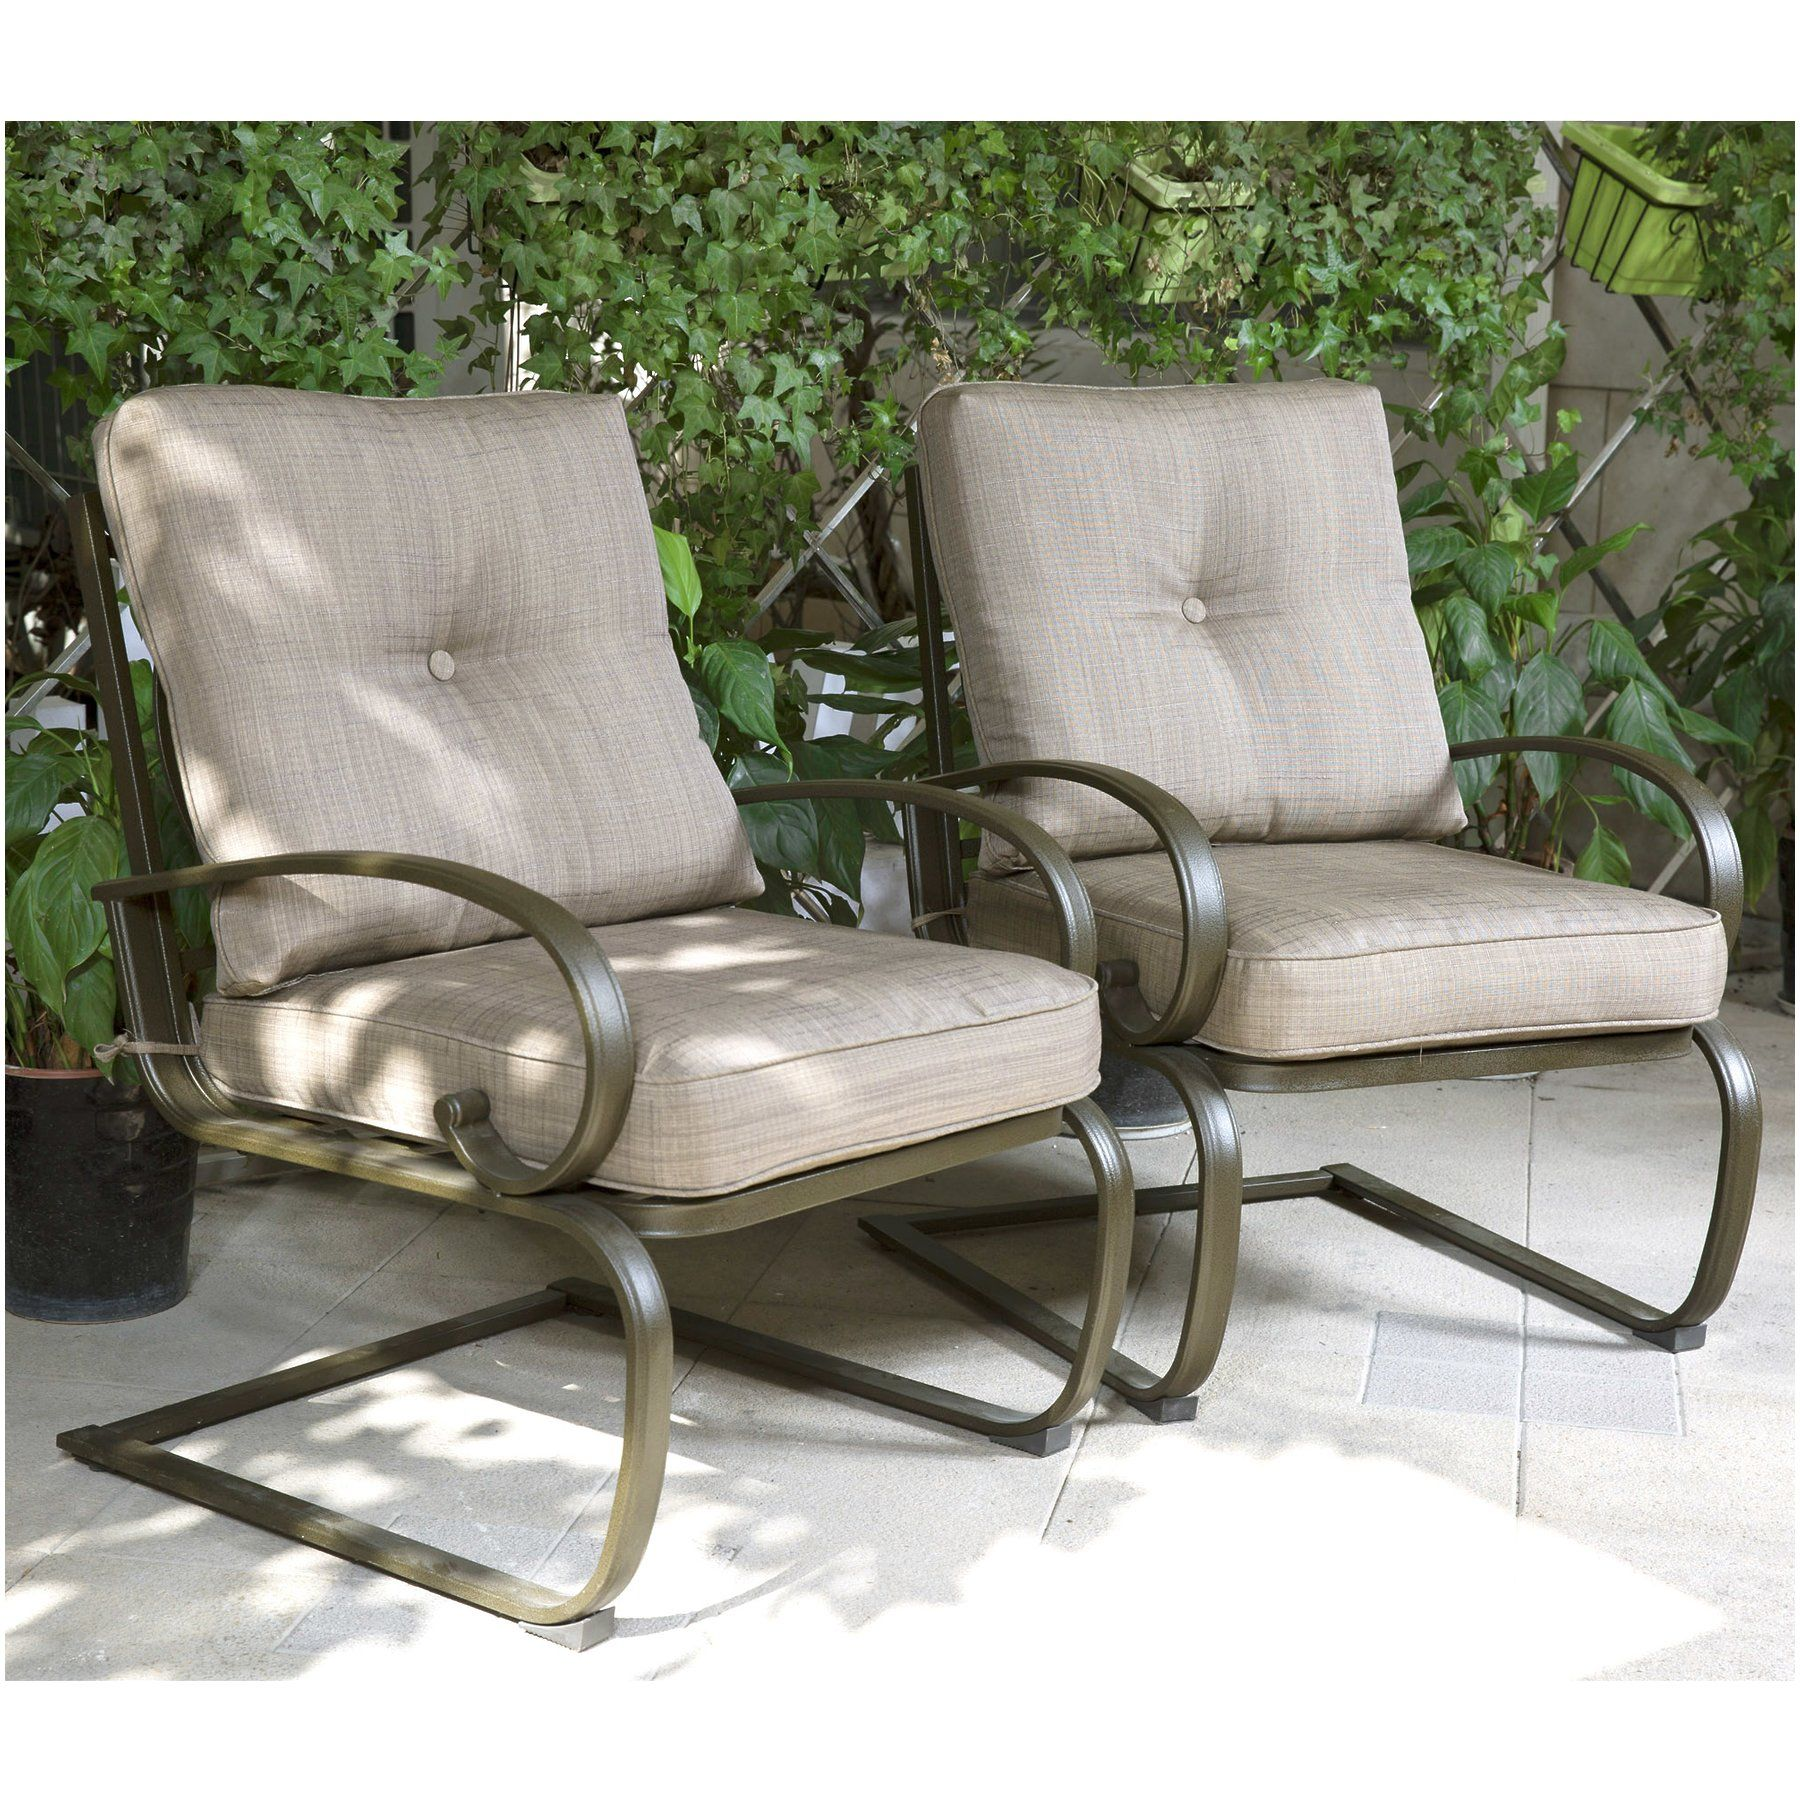 Check Out Cloud Mountain Set Of 2 Patio Club Chairs Outdoor